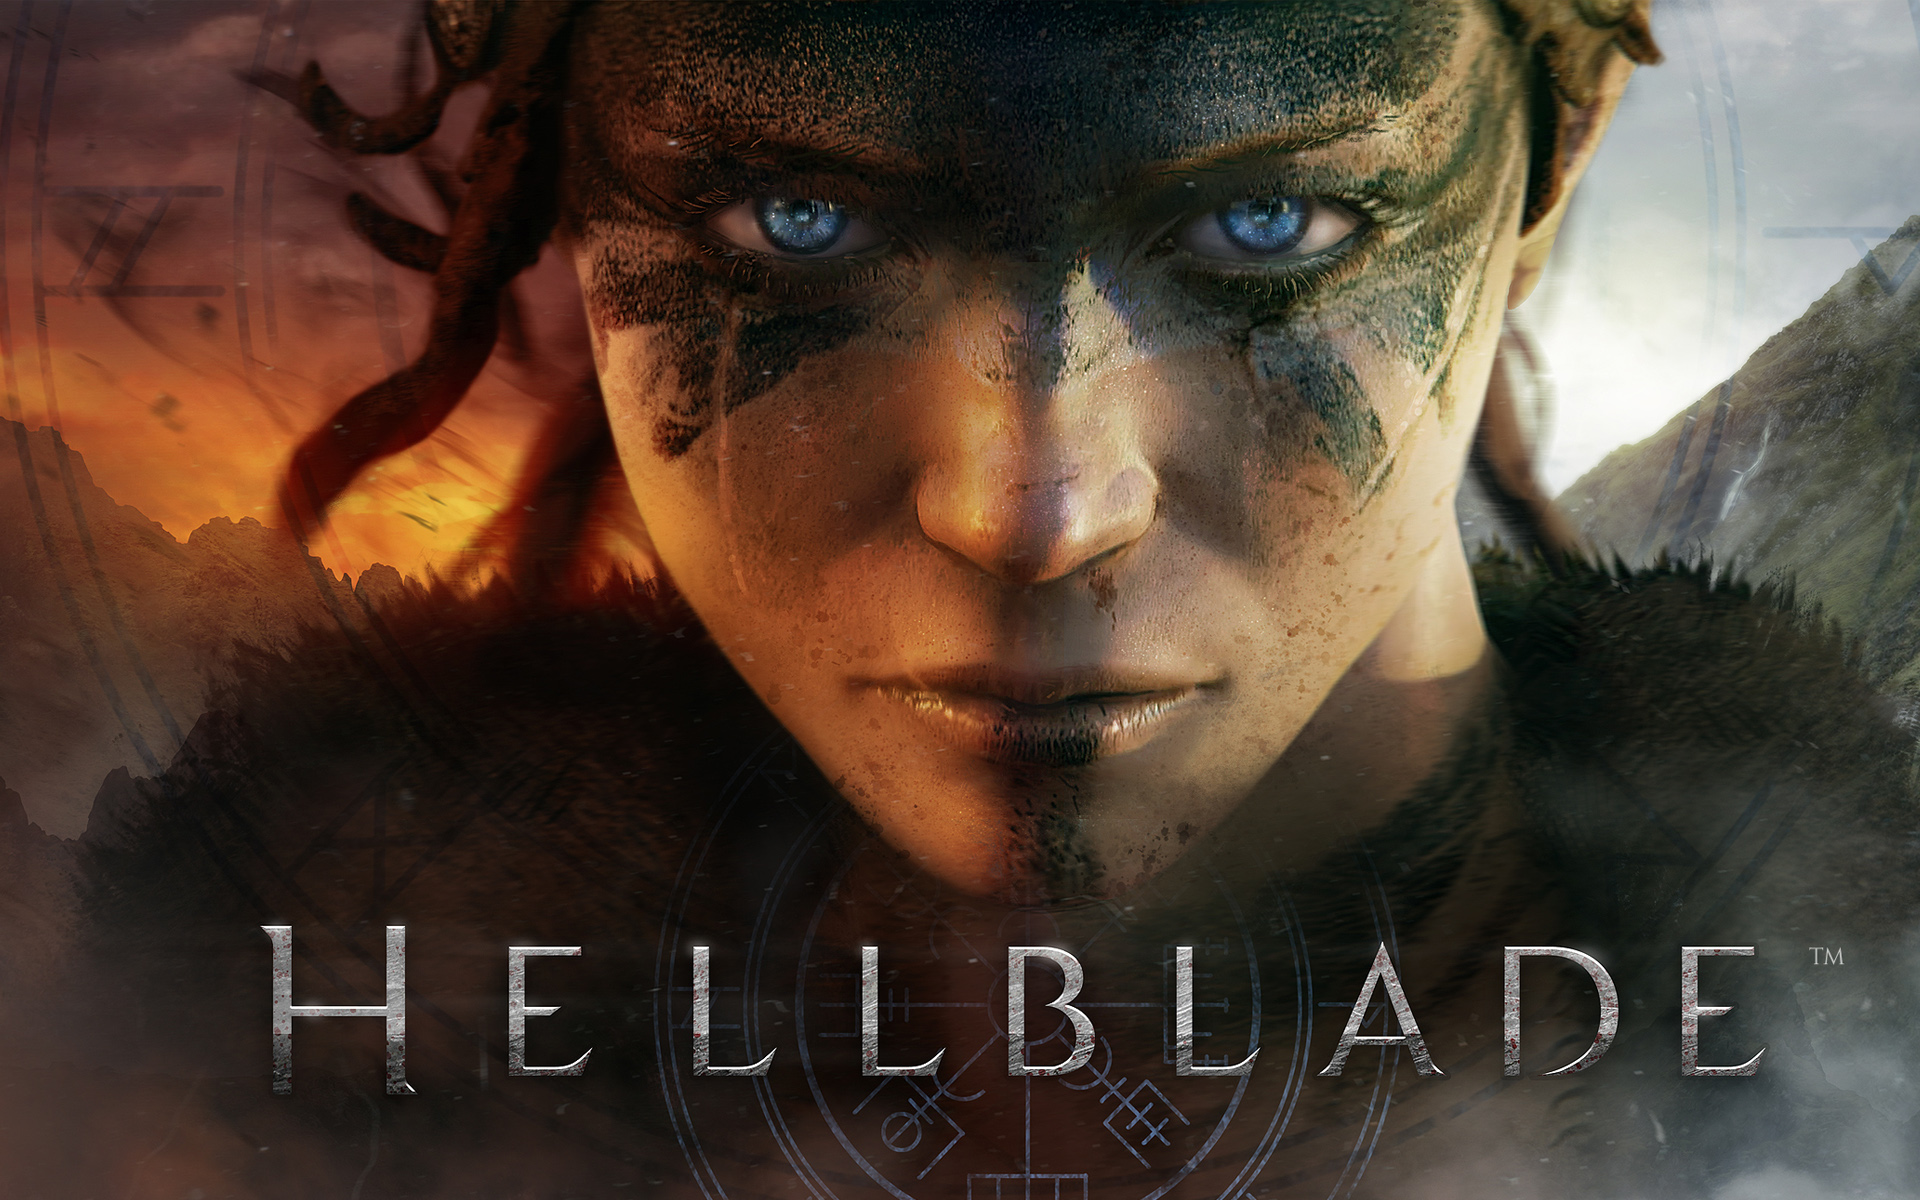 1920x1080 Hellblade Ps4 Game Laptop Full Hd 1080p Hd 4k Wallpapers